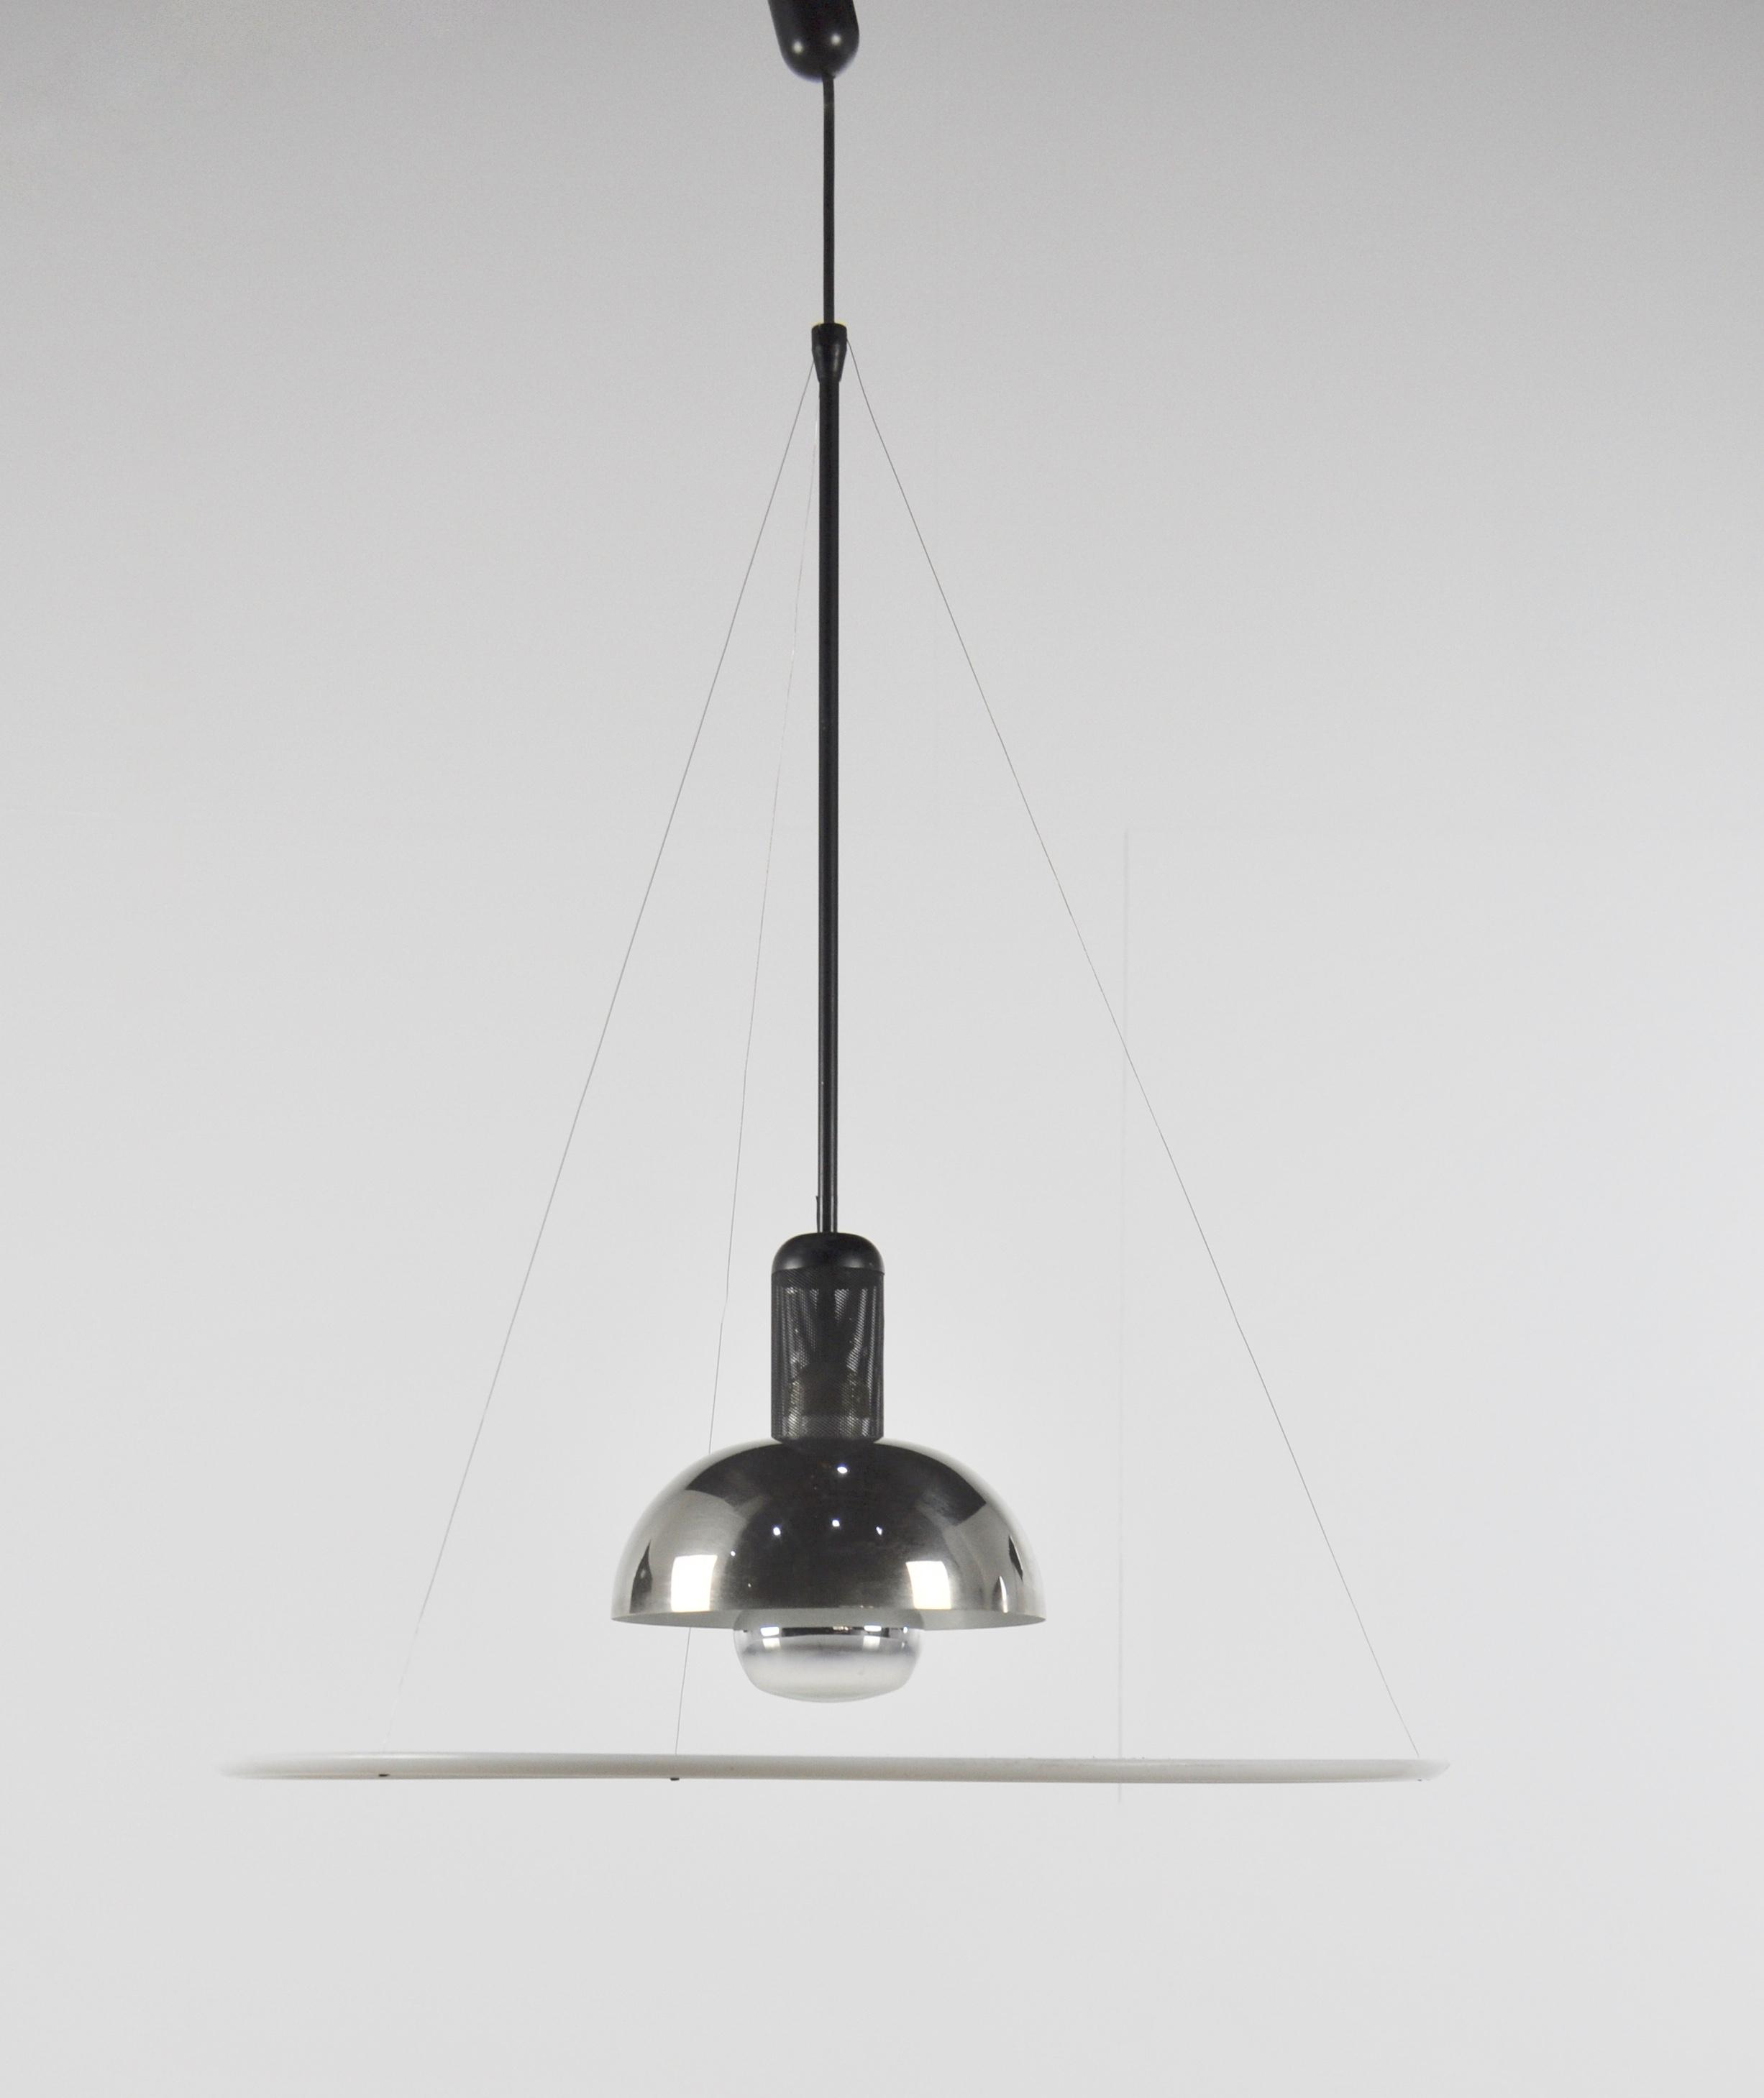 Flos Frisbi Suspension Light